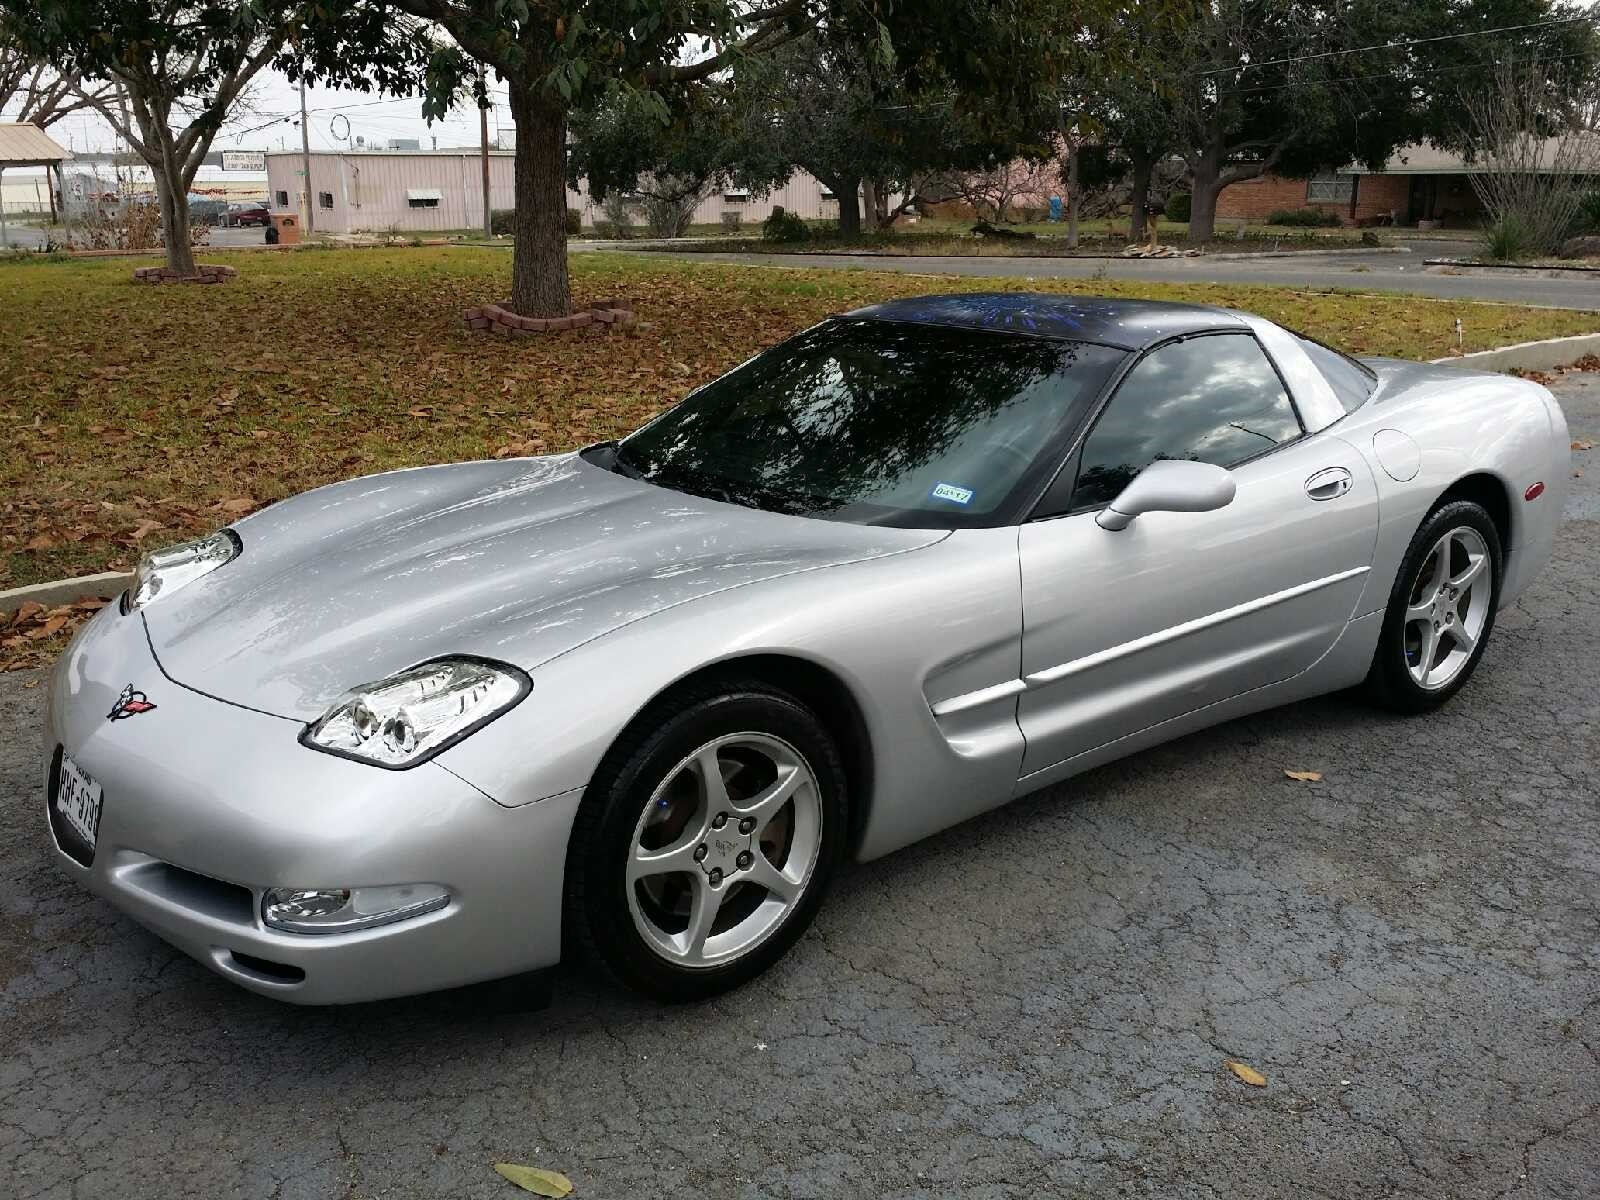 Chevrolet Corvette Questions - I HAVE TRIED NUMBEROUS TIMES